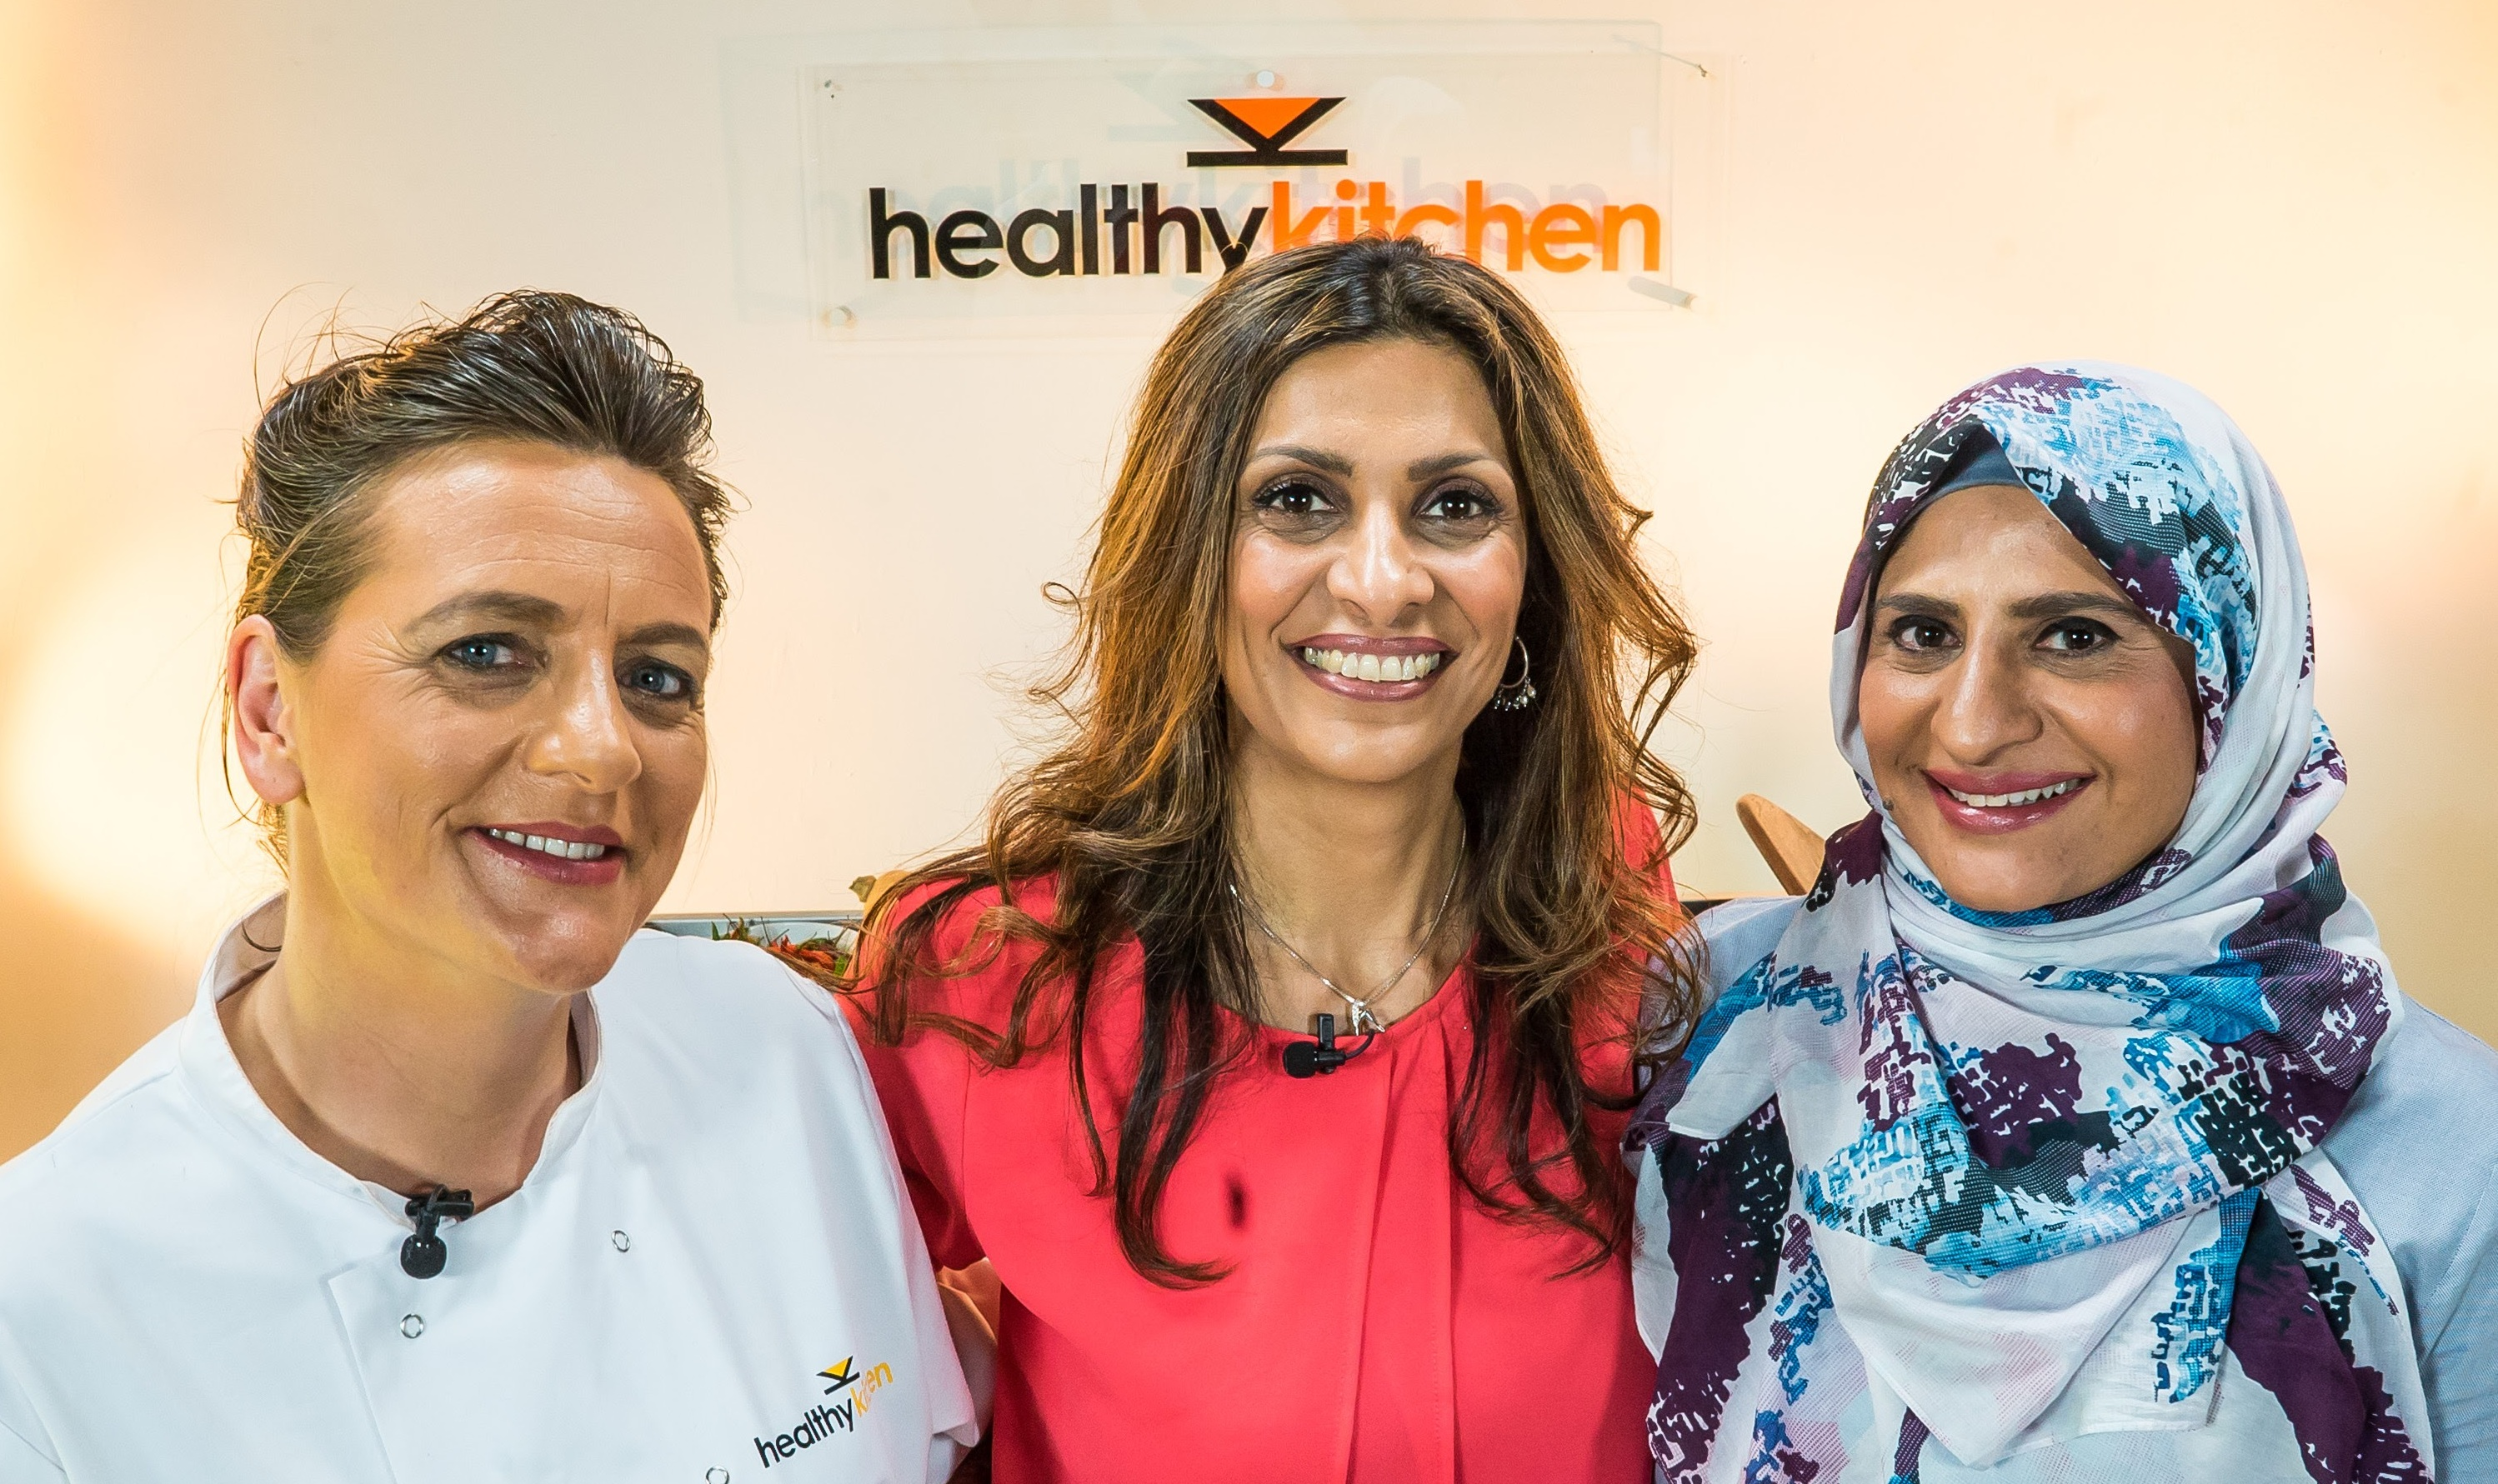 Team GB Swimmers and Healthy Food TV Show